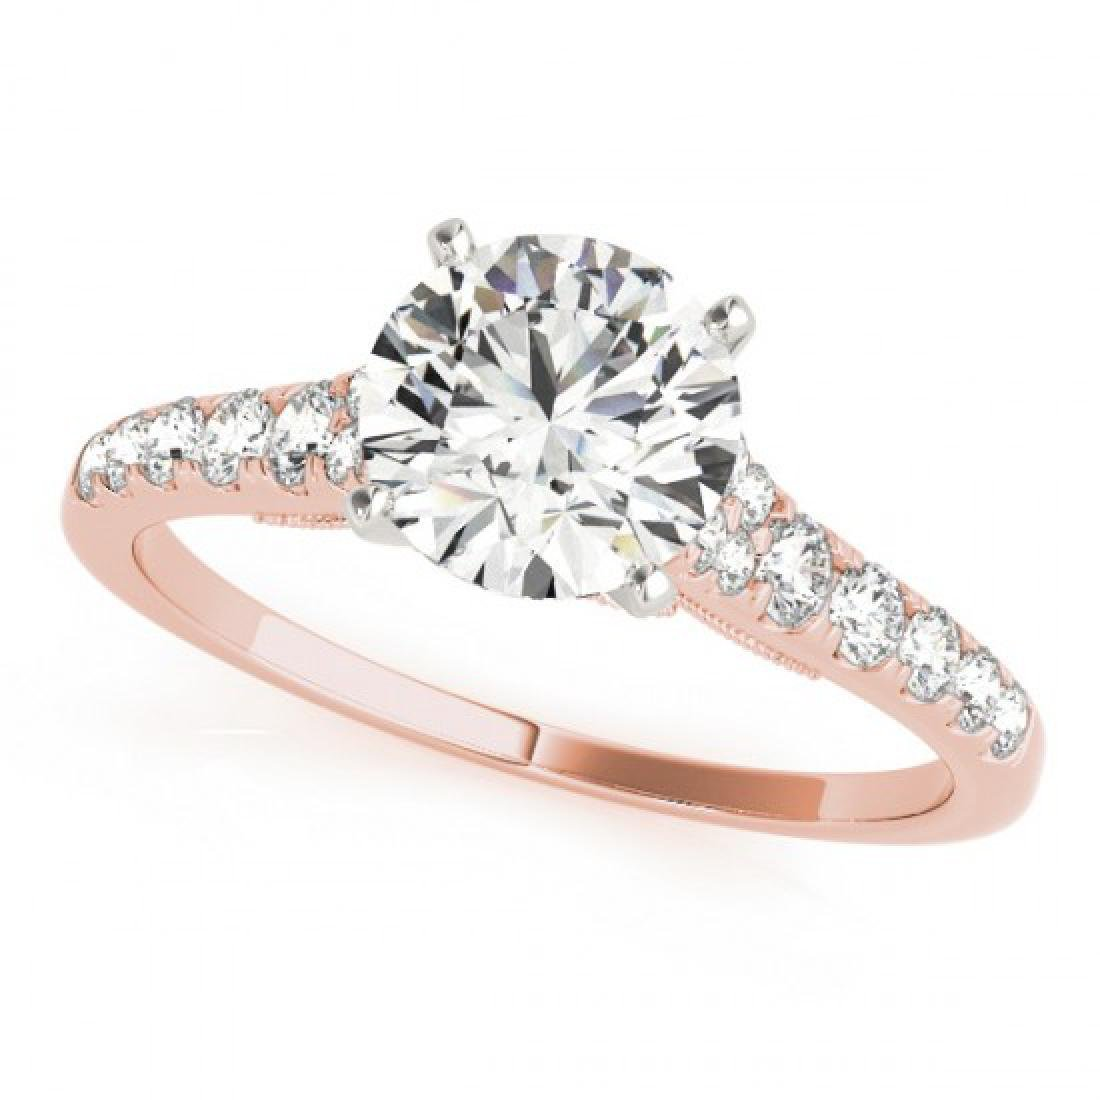 0.92 CTW Certified VS/SI Diamond Solitaire Ring 14K - 2